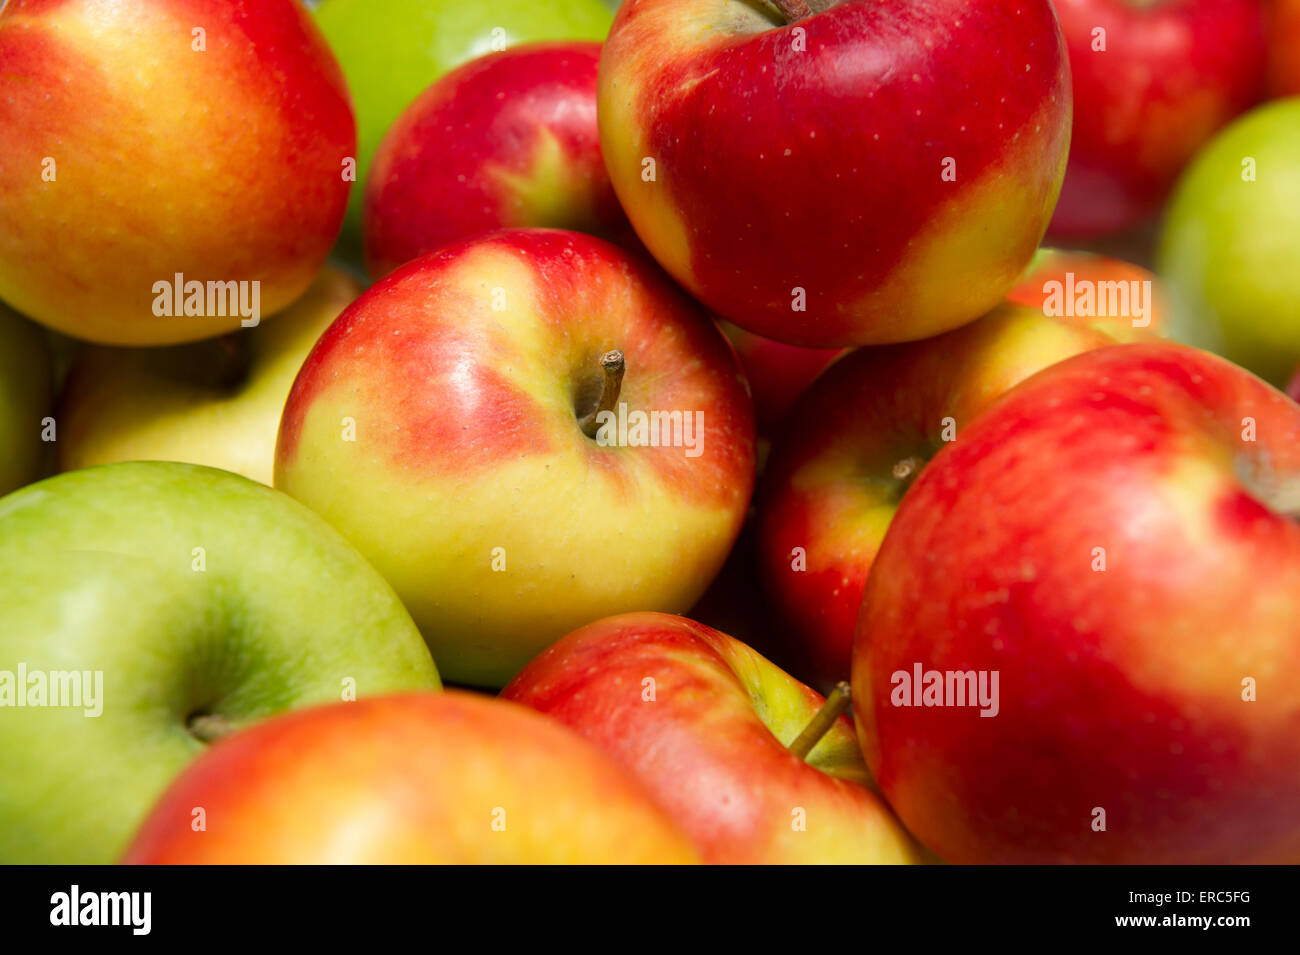 Fresh apples ready for consumption - Stock Image